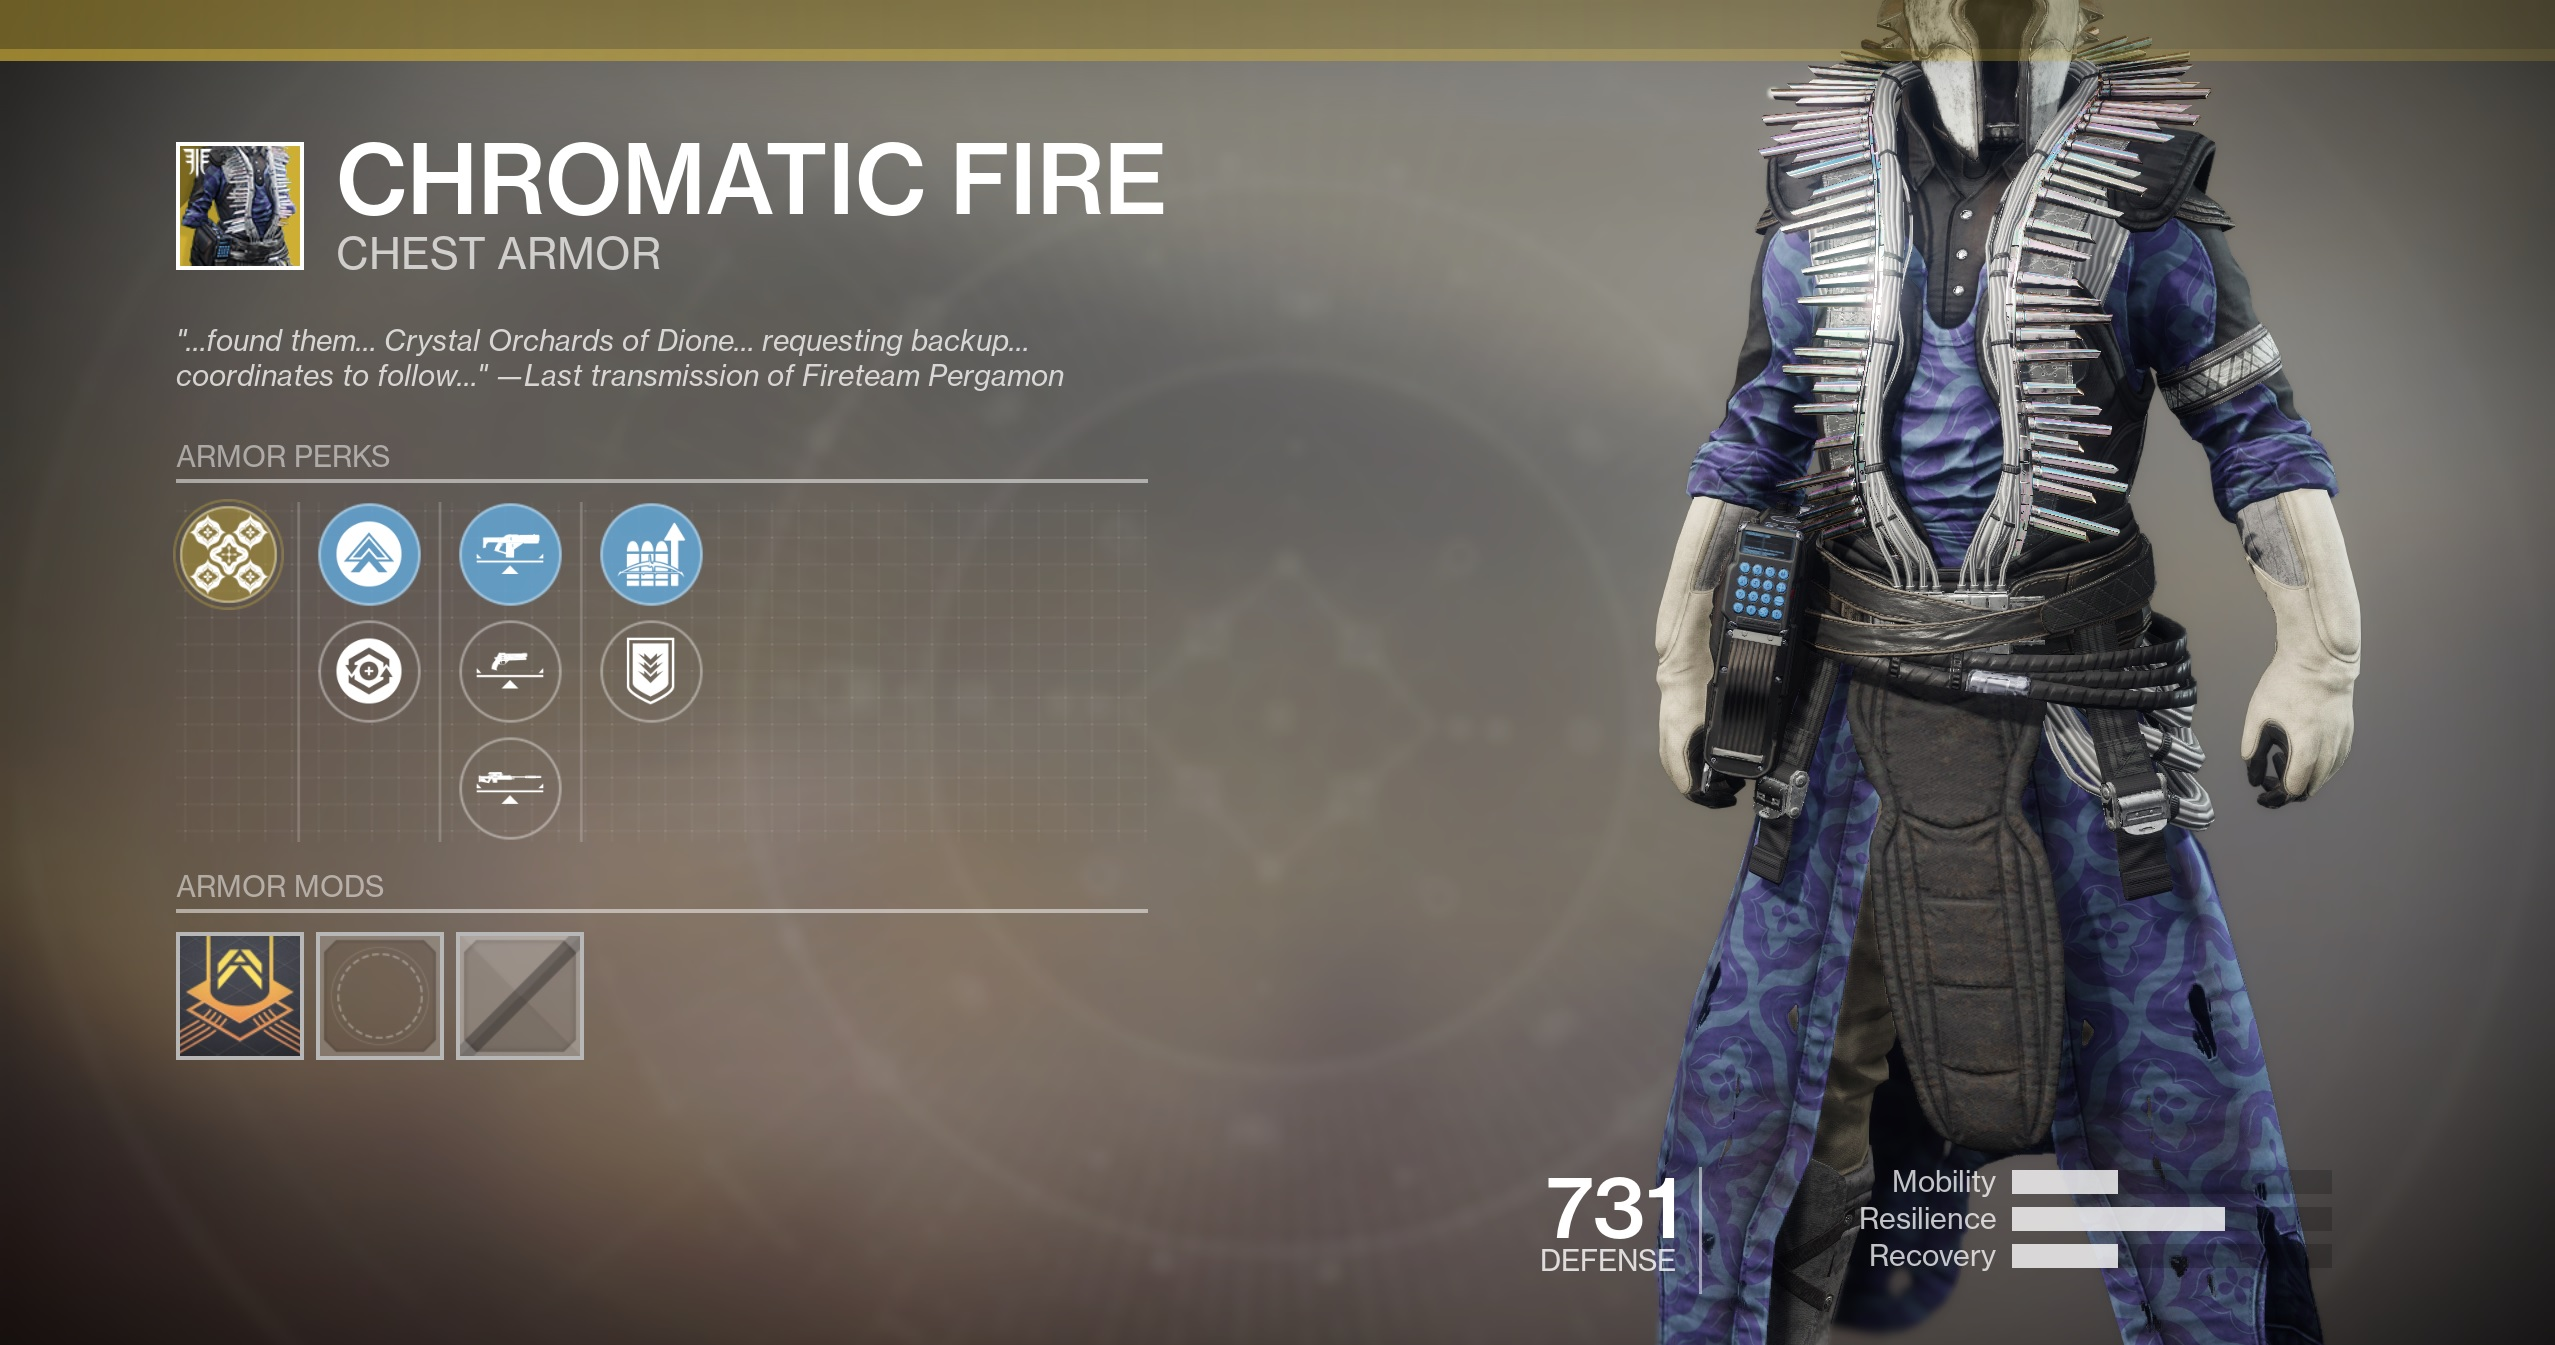 Destiny 2 Xur location: Where is Xur and what Exotics is he selling